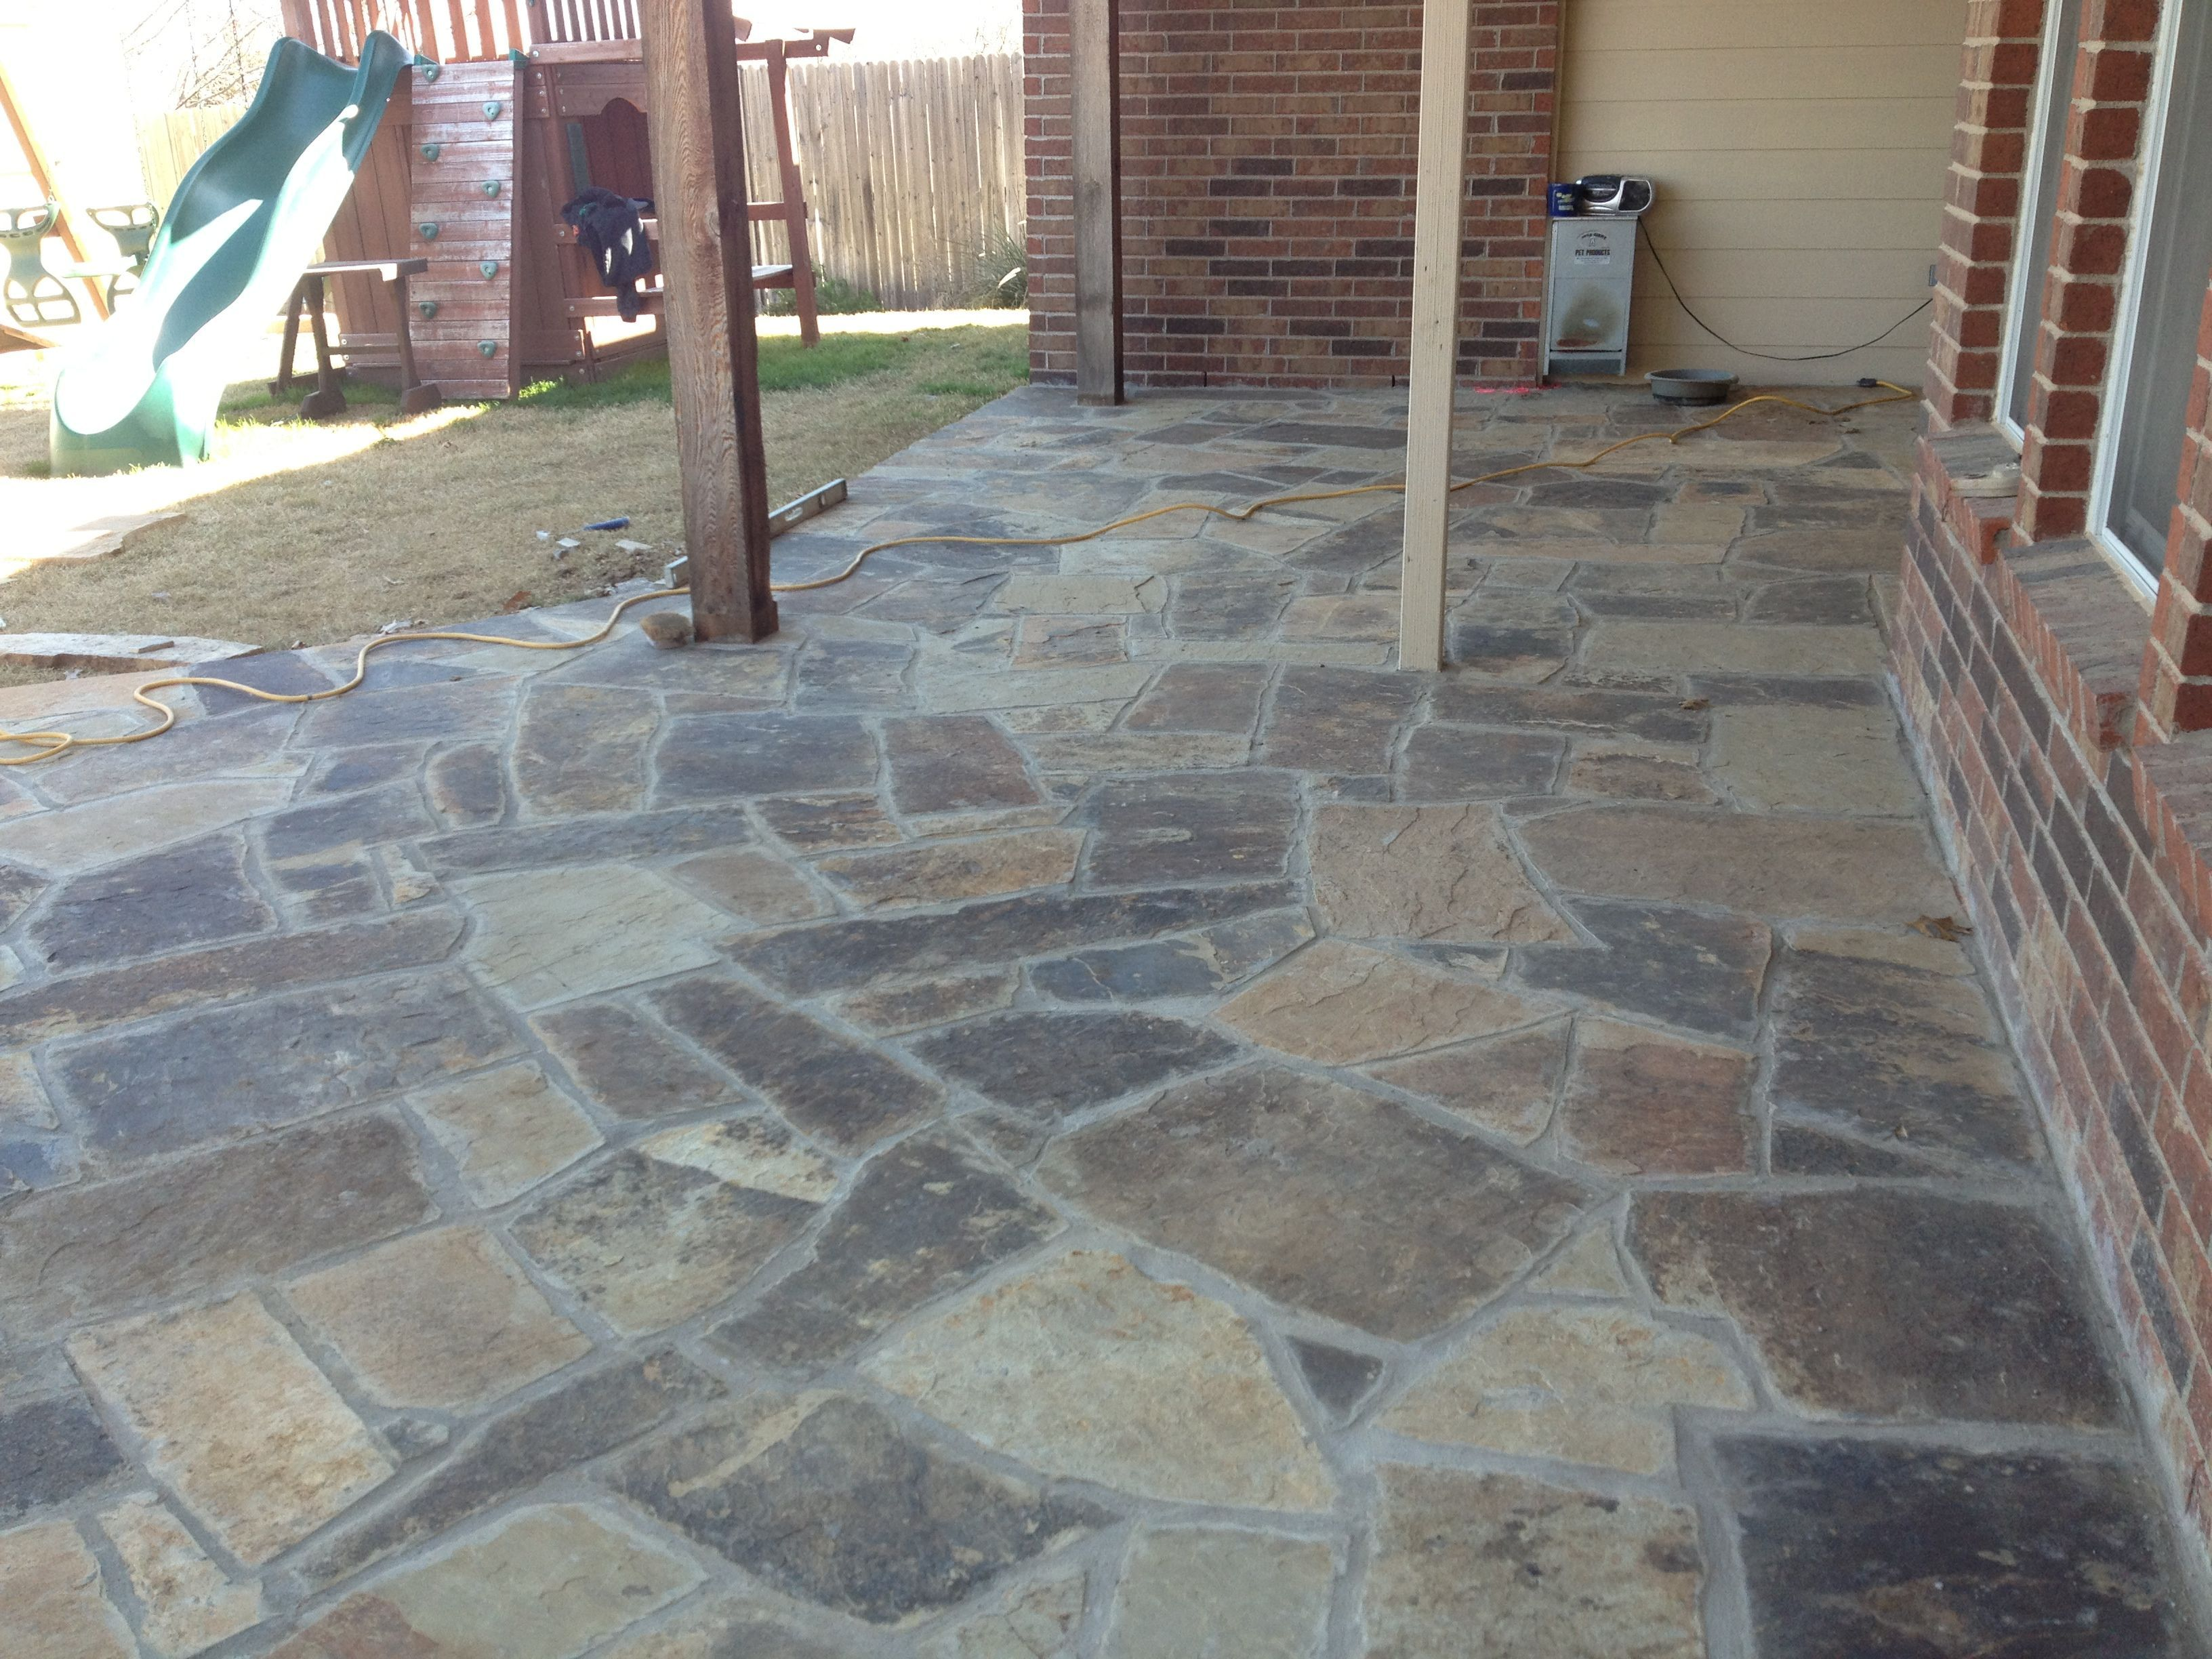 GroundScape, A Fort Worth Landscape Company, Installs A Flagstone Patio Off  The Back Of